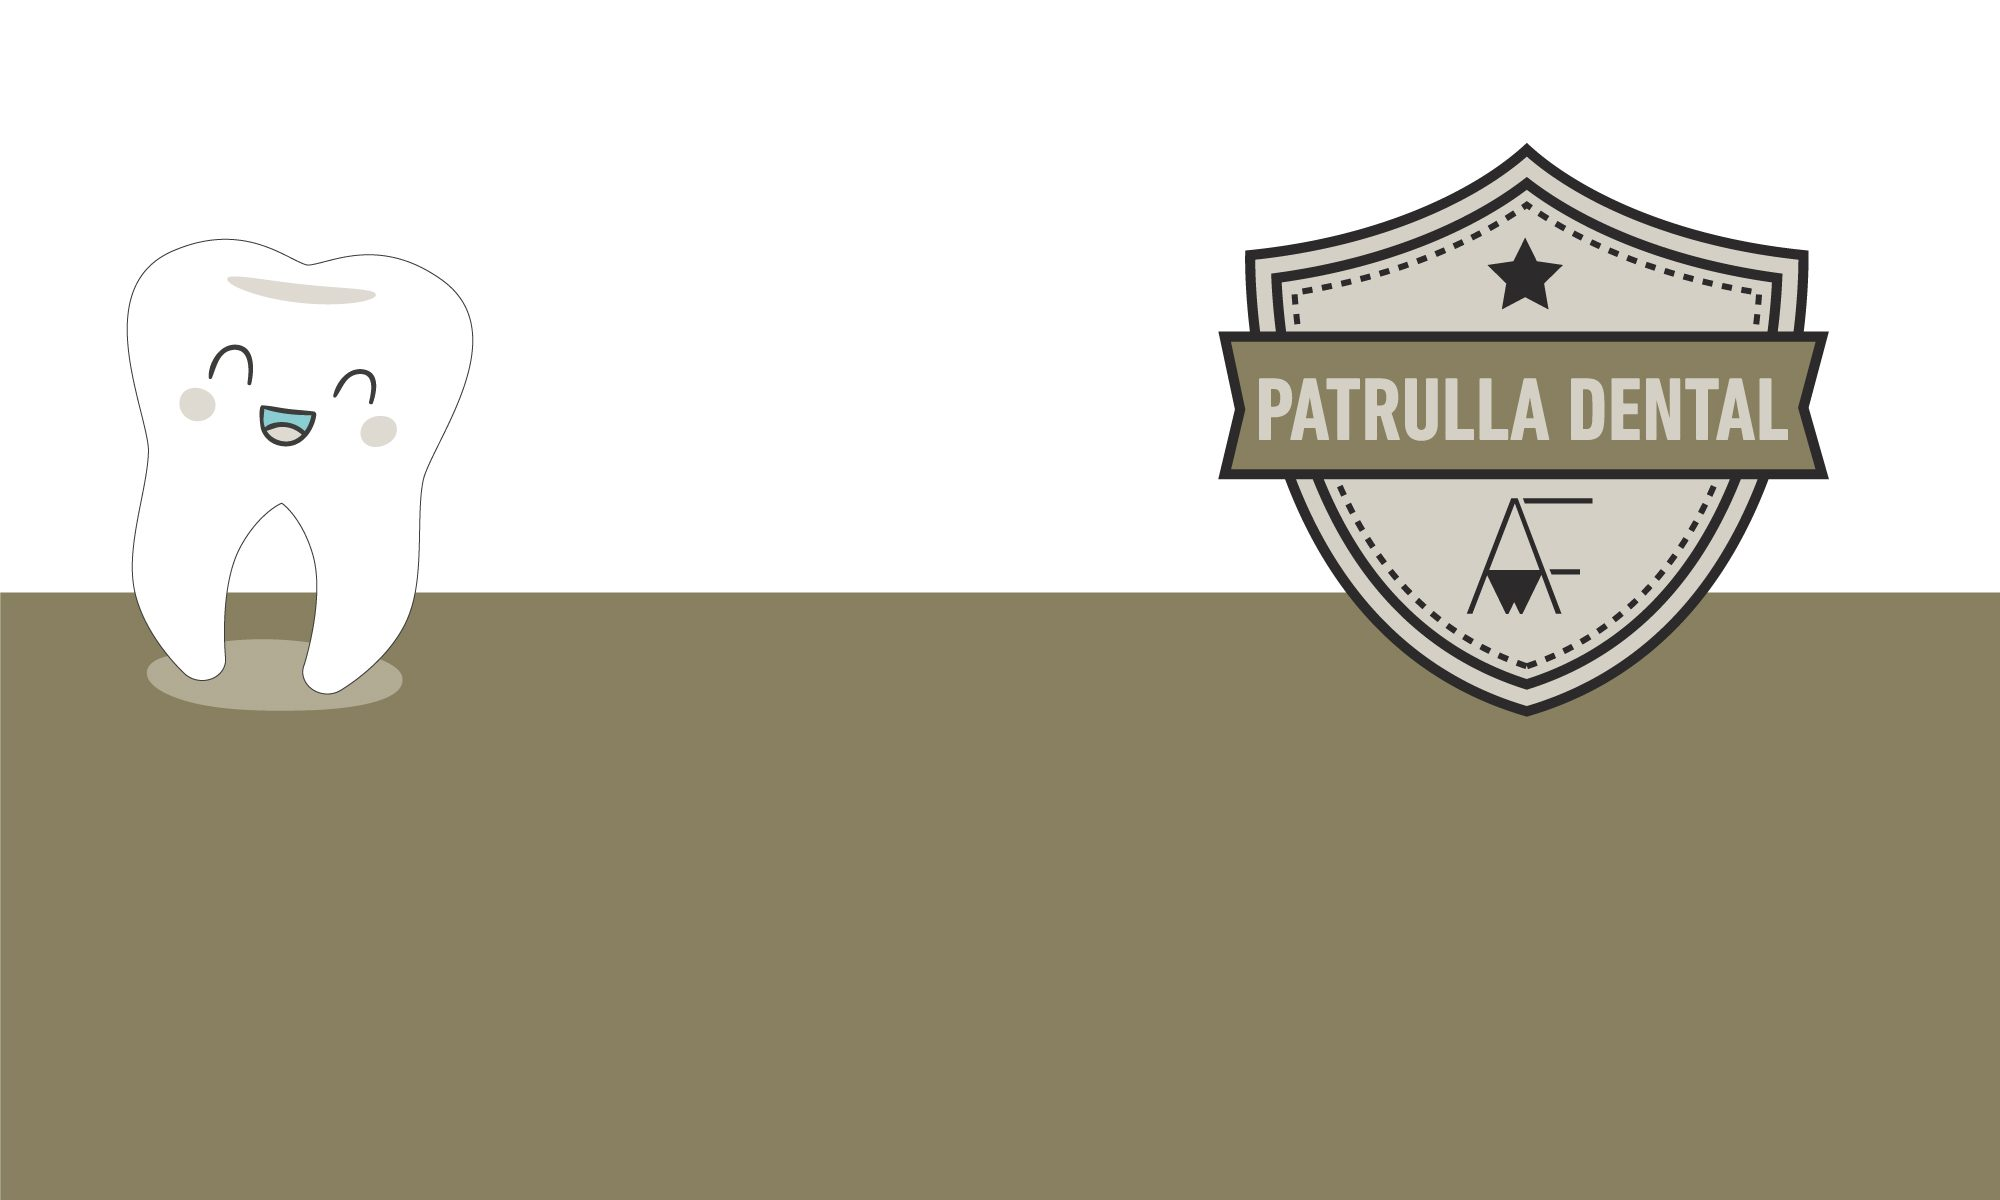 patrulla dental